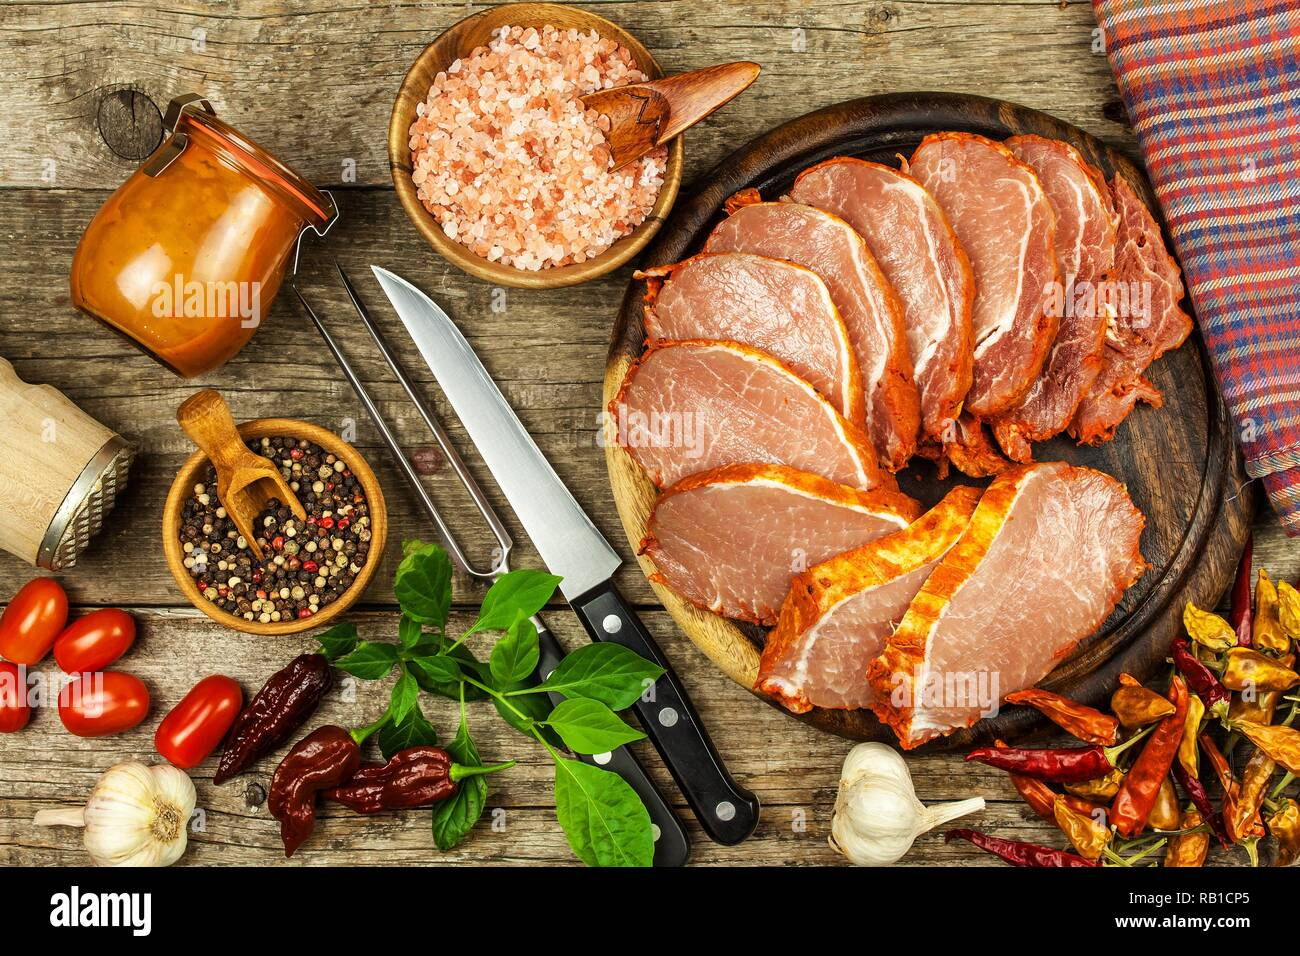 Raw pork chop with or marinade  Home preparation of meat for